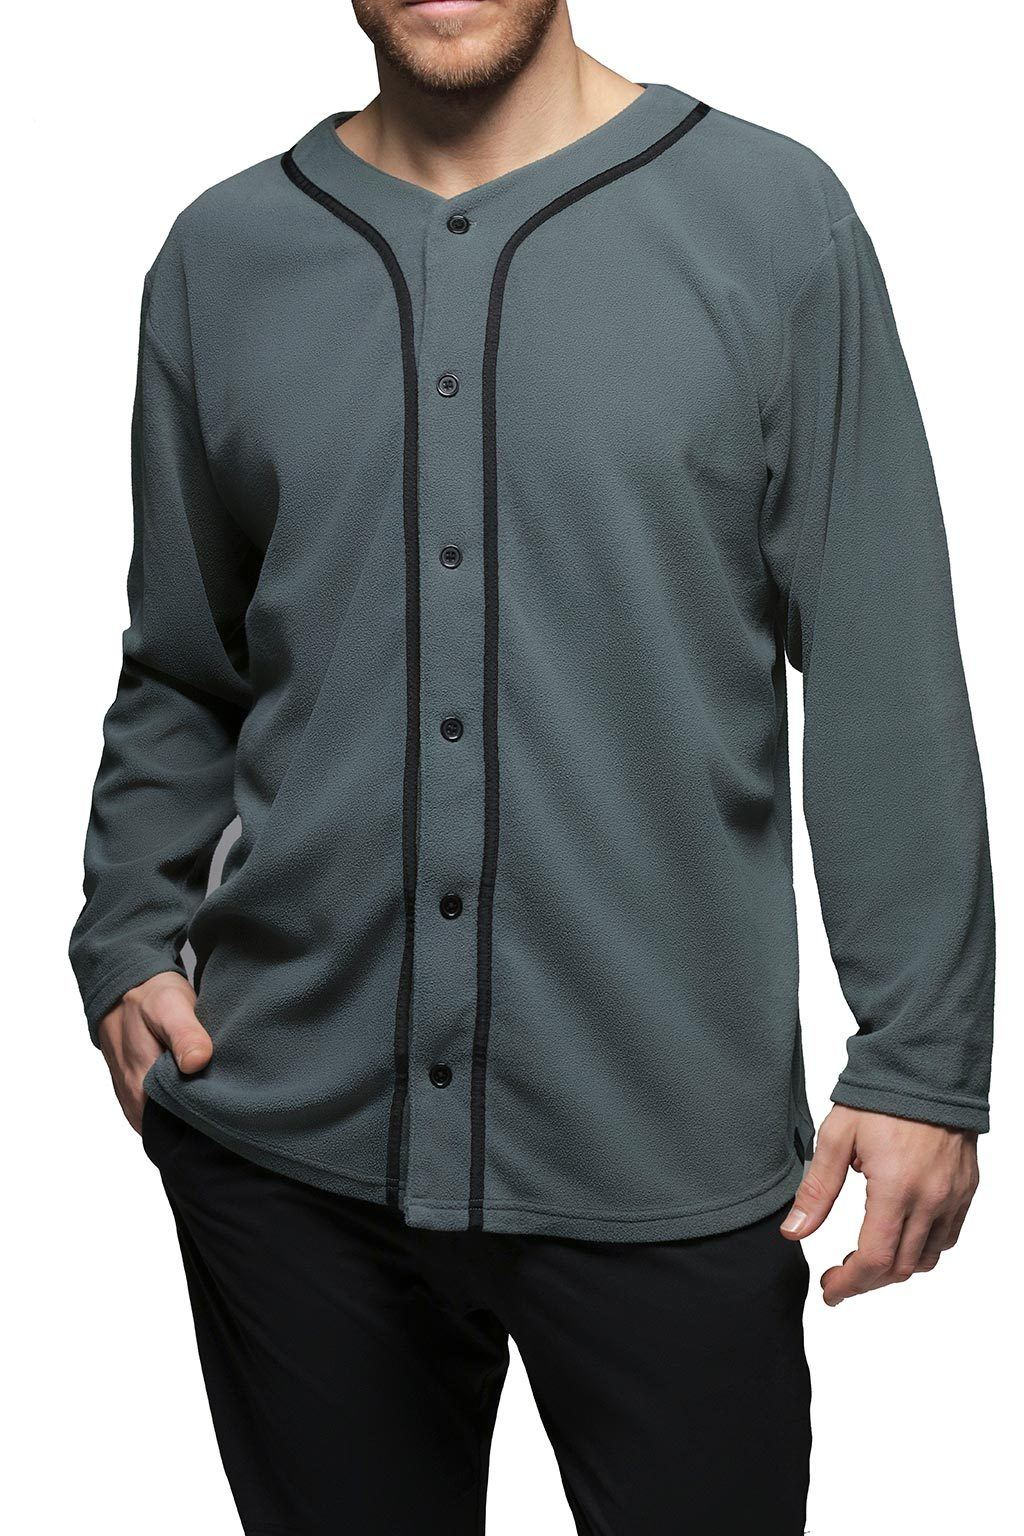 Men's Button Front Shirt Loungewear - Graphite